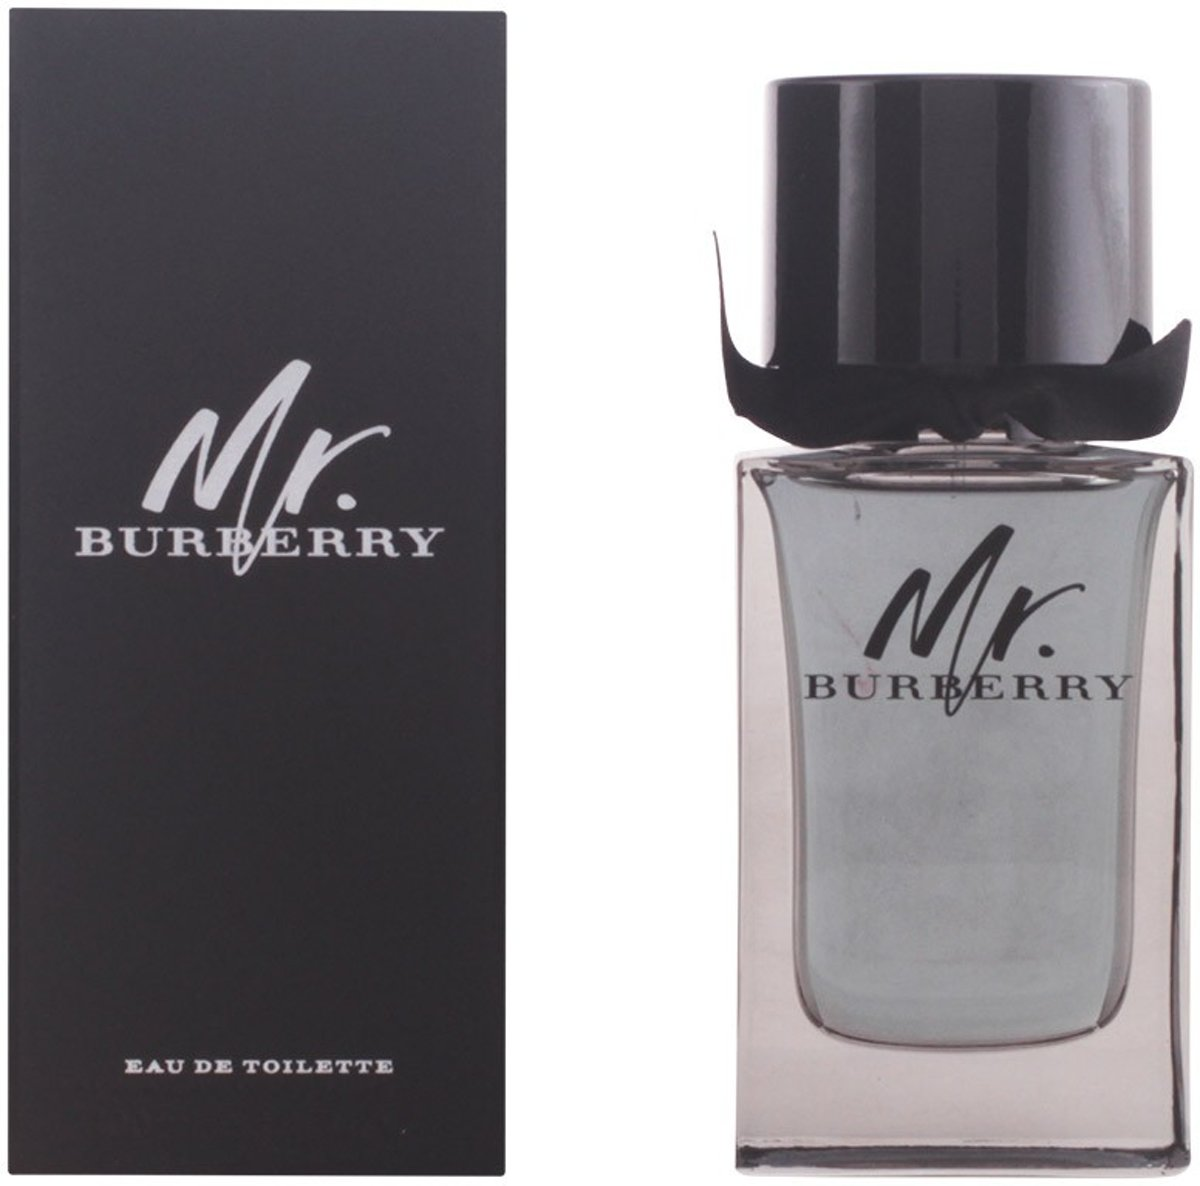 MULTI BUNDEL 2 stuks MR BURBERRY Eau de Toilette Spray 100 ml